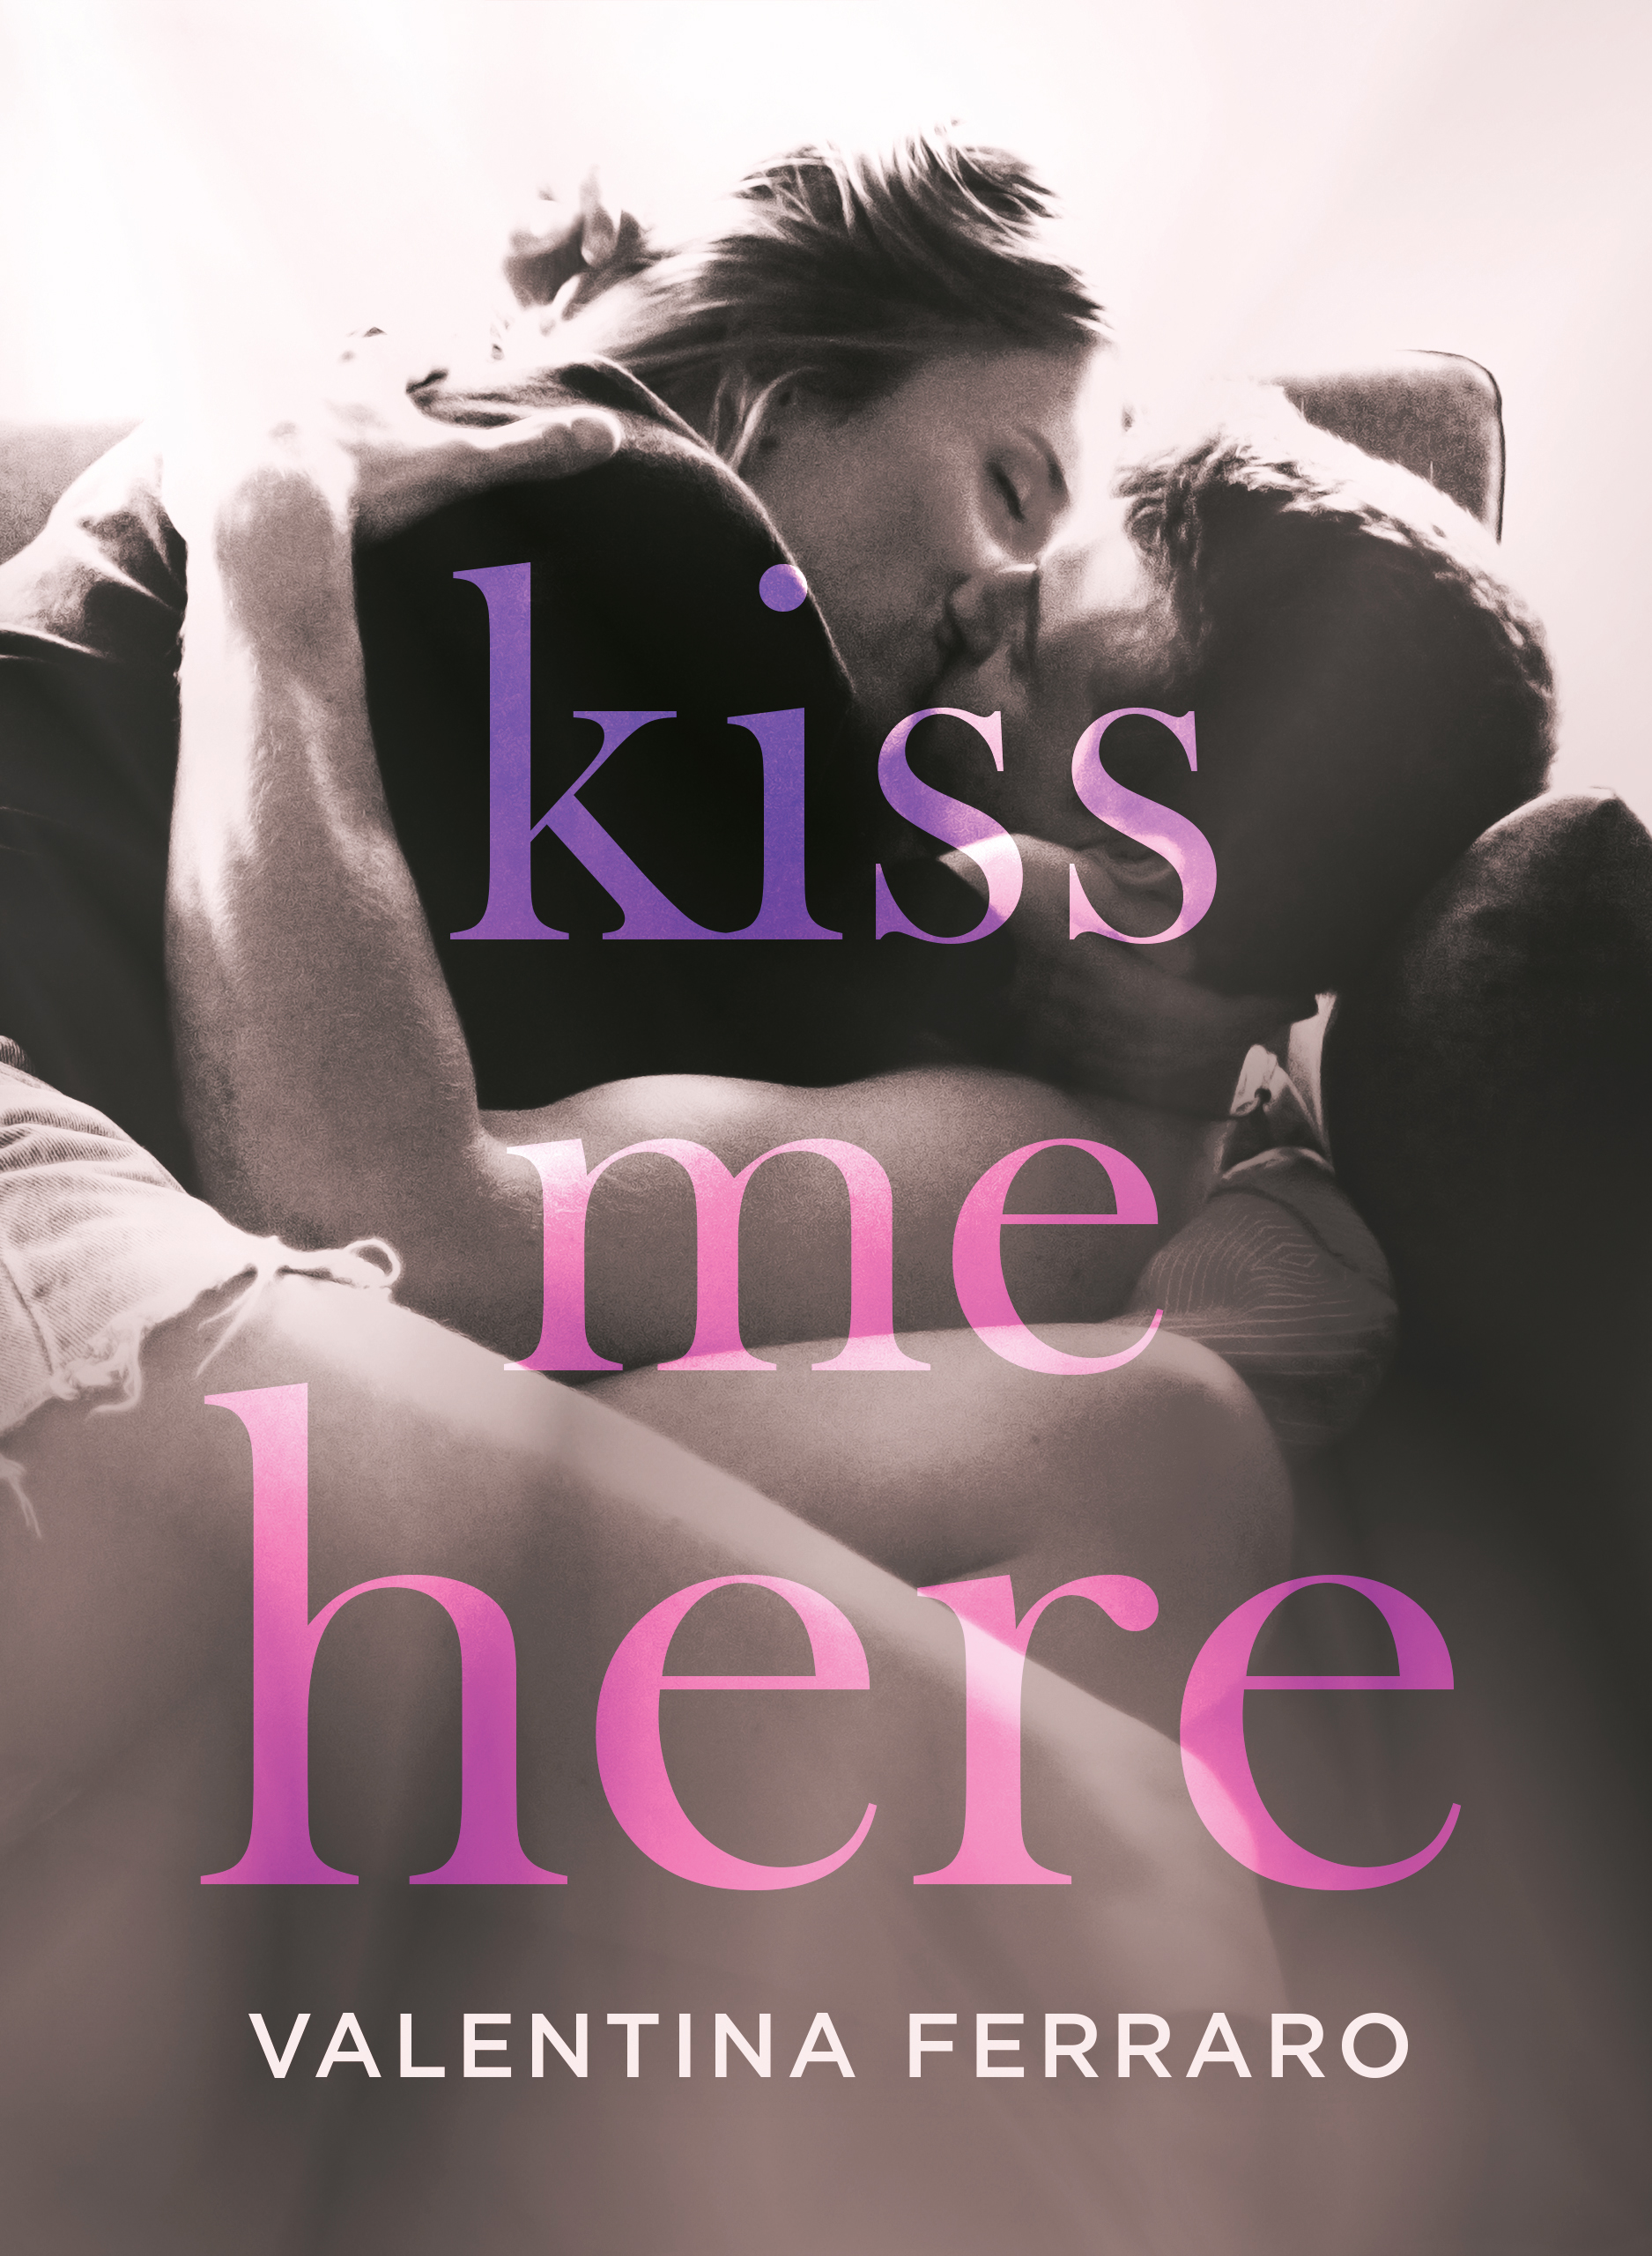 COVER REVEAL: Kiss me Here